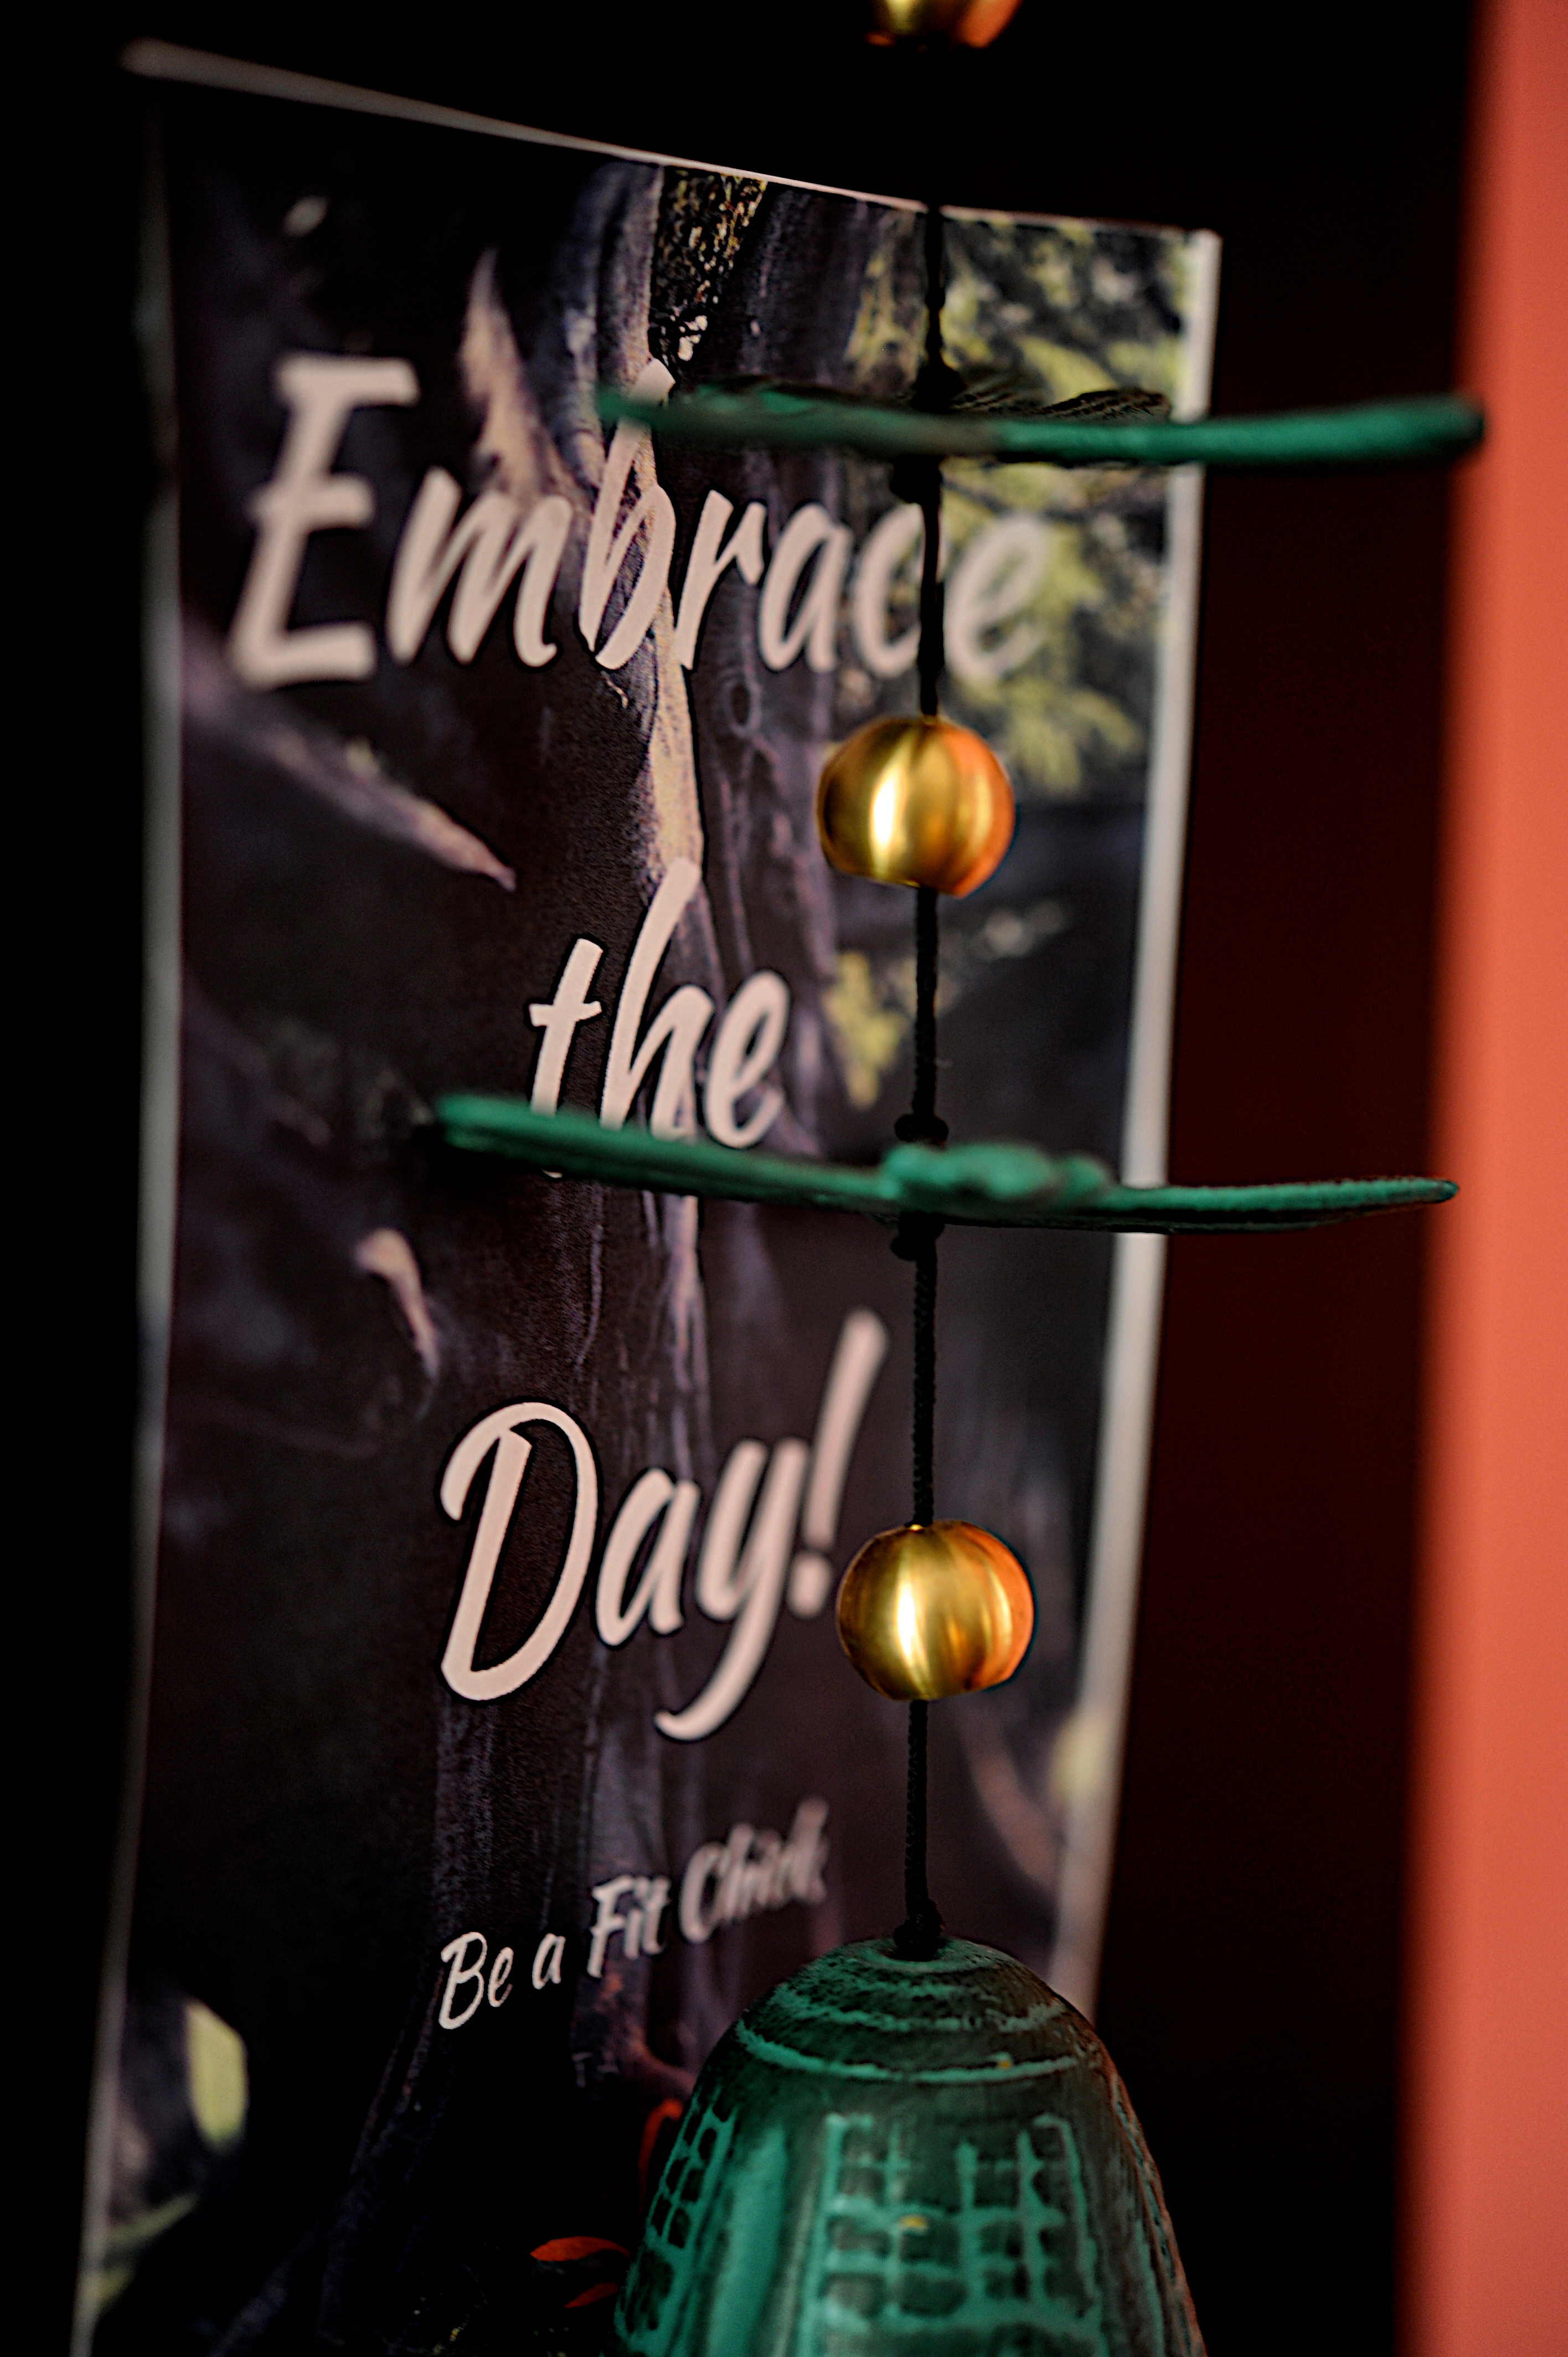 Lobby - Embrace the day2 - WB